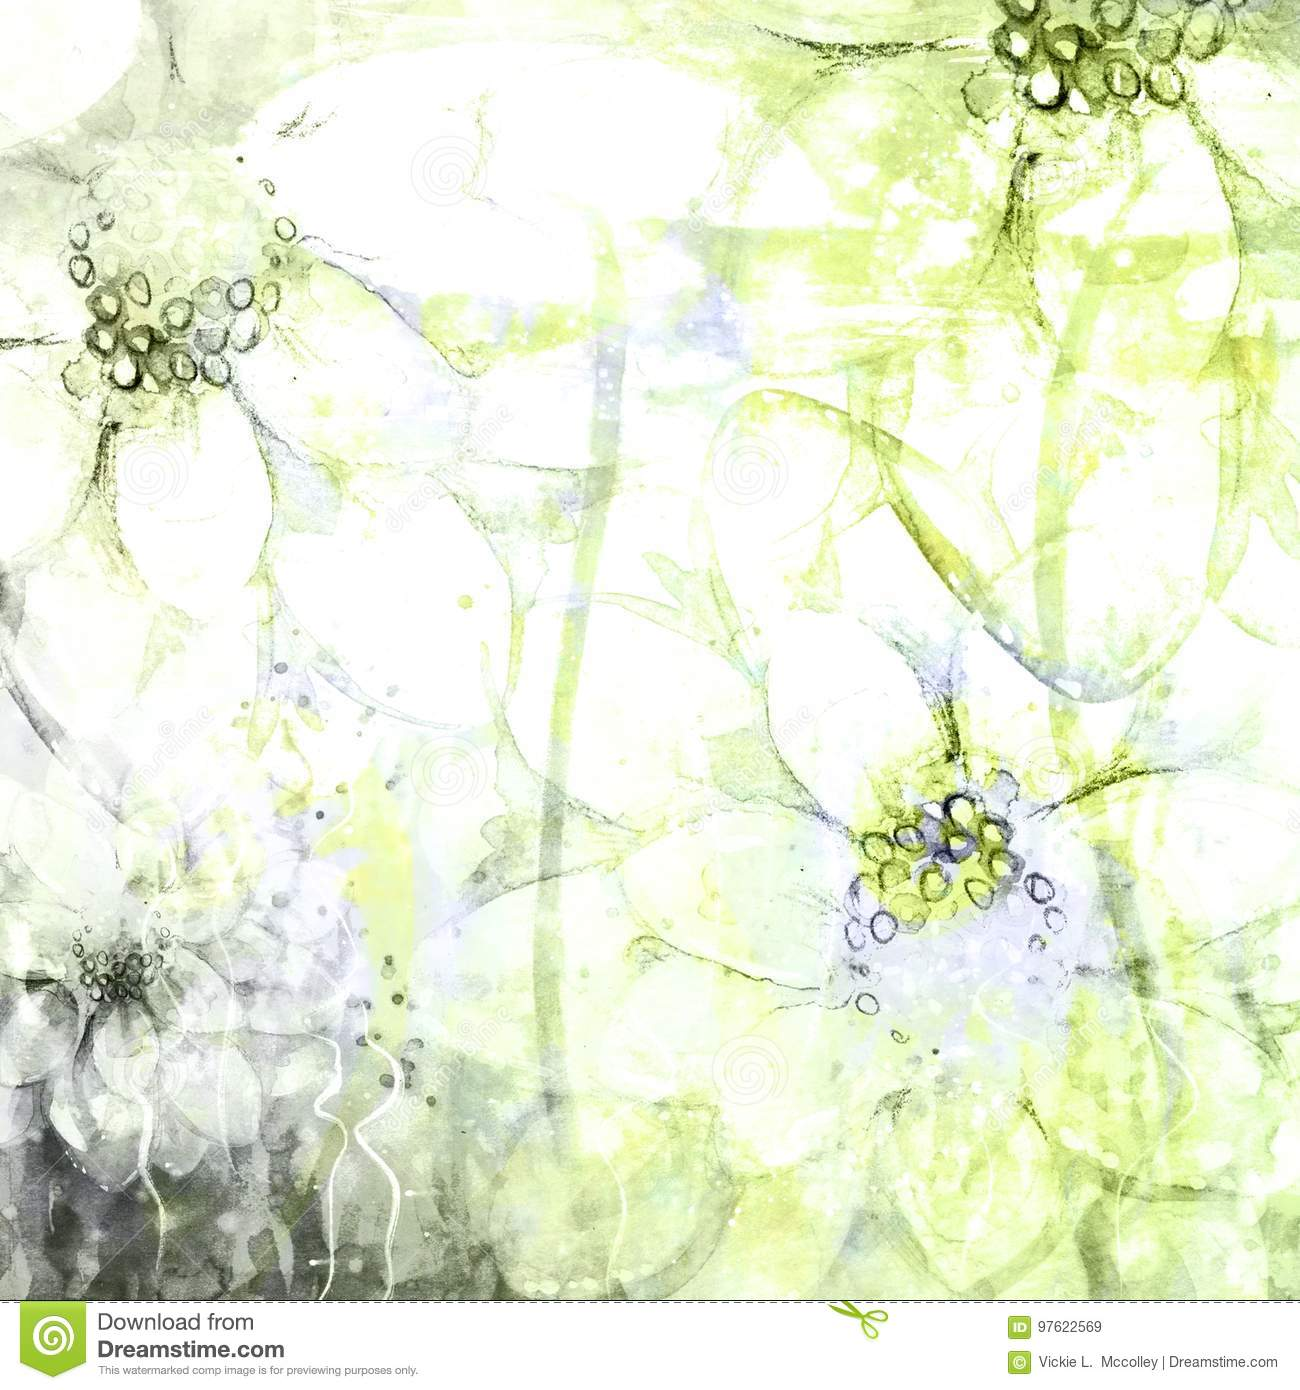 Faded Abstract Floral Sketched Watercolor Grunge Background Illustrations